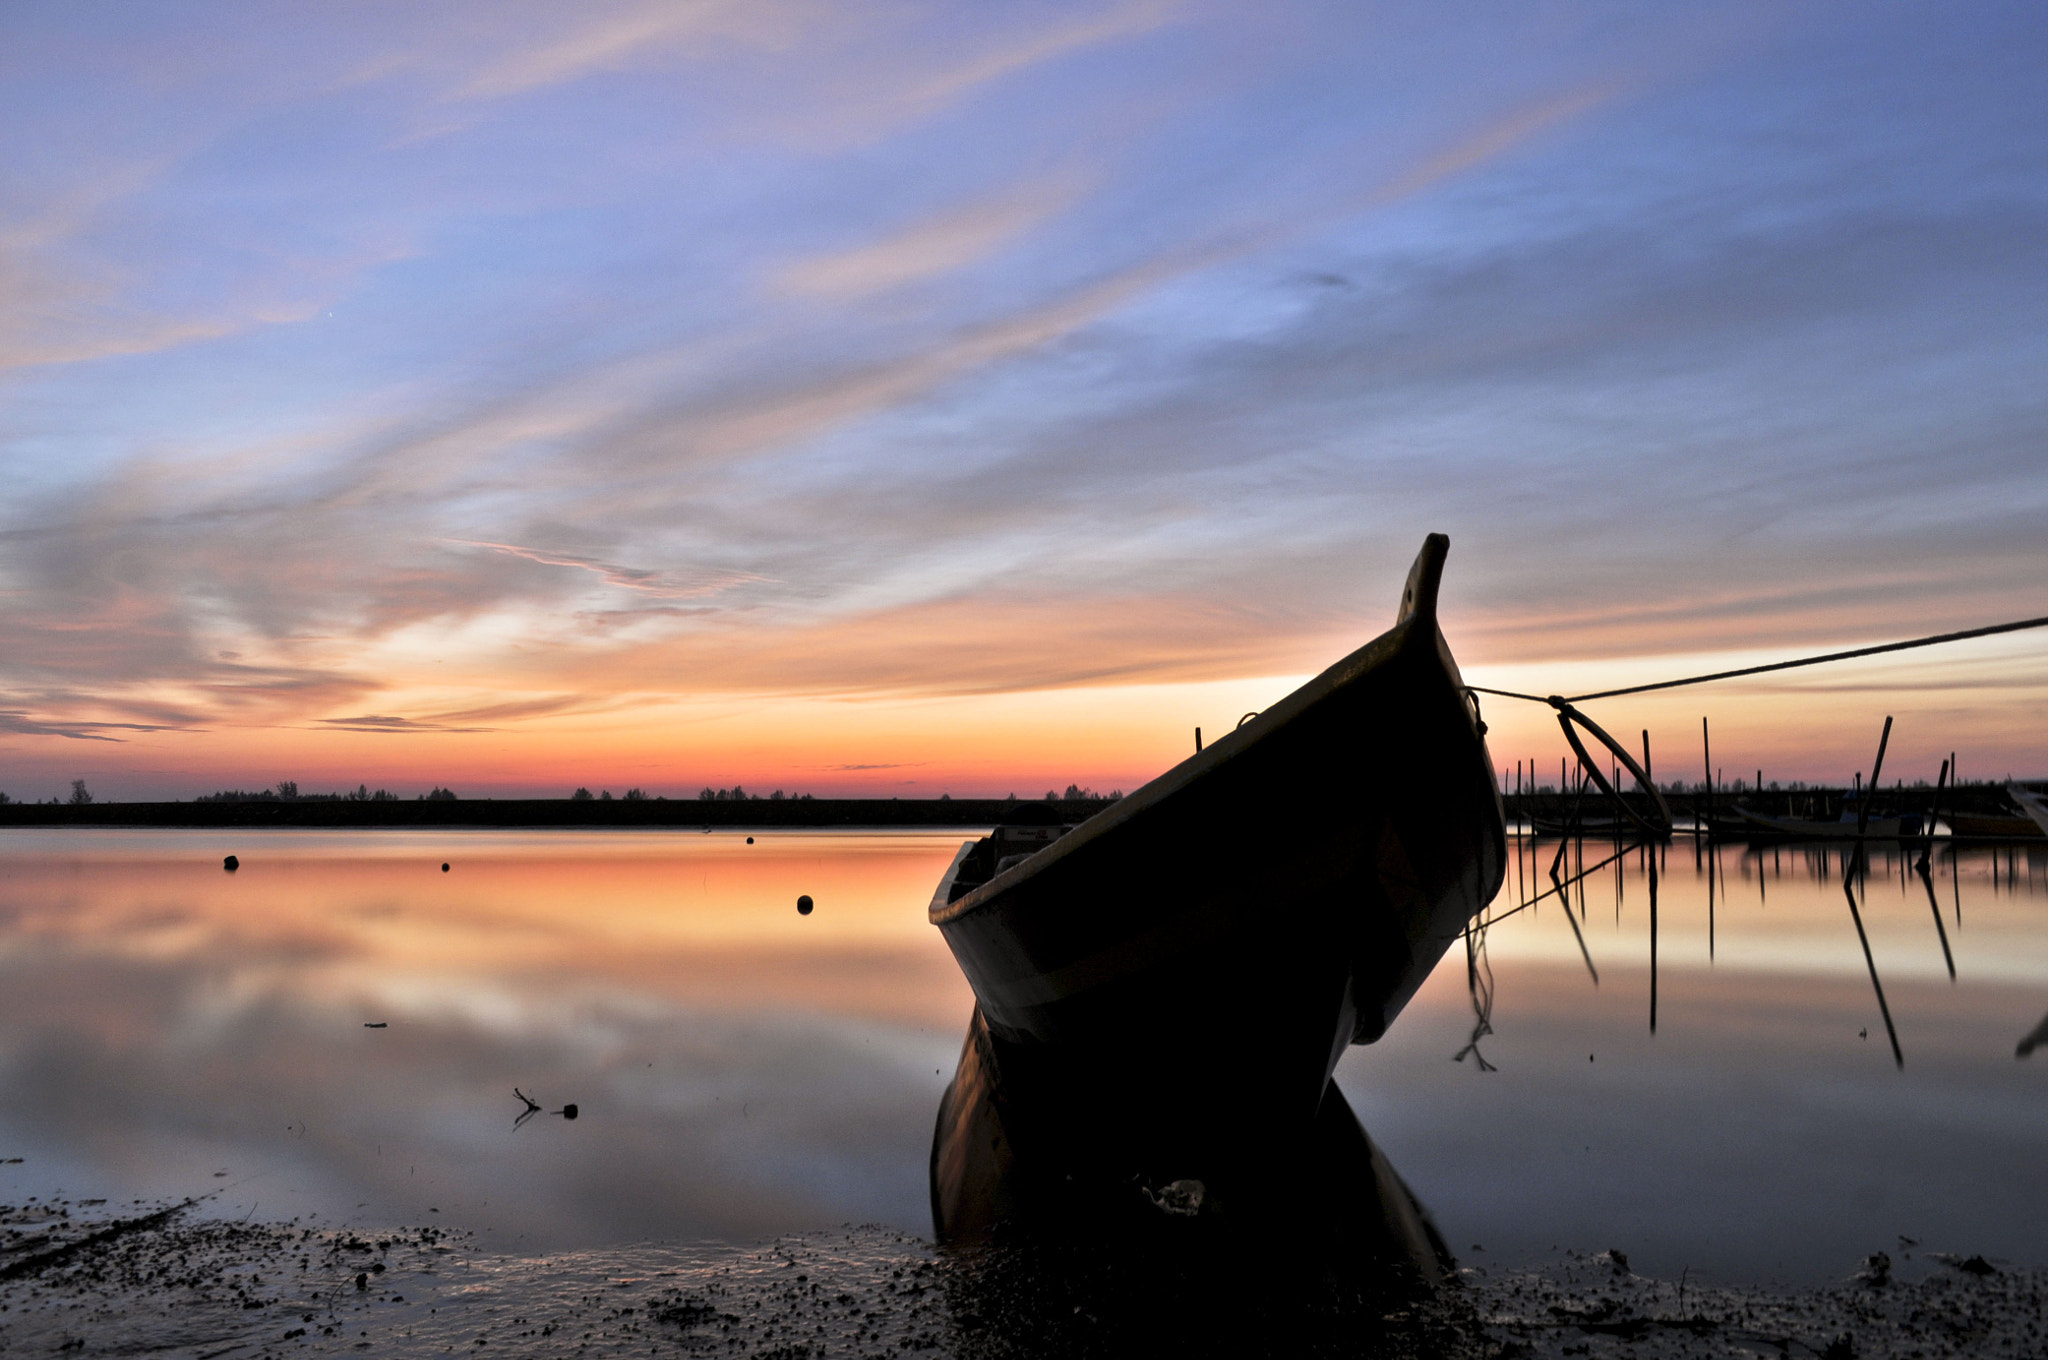 Photograph Sunset by thien huat Ong on 500px